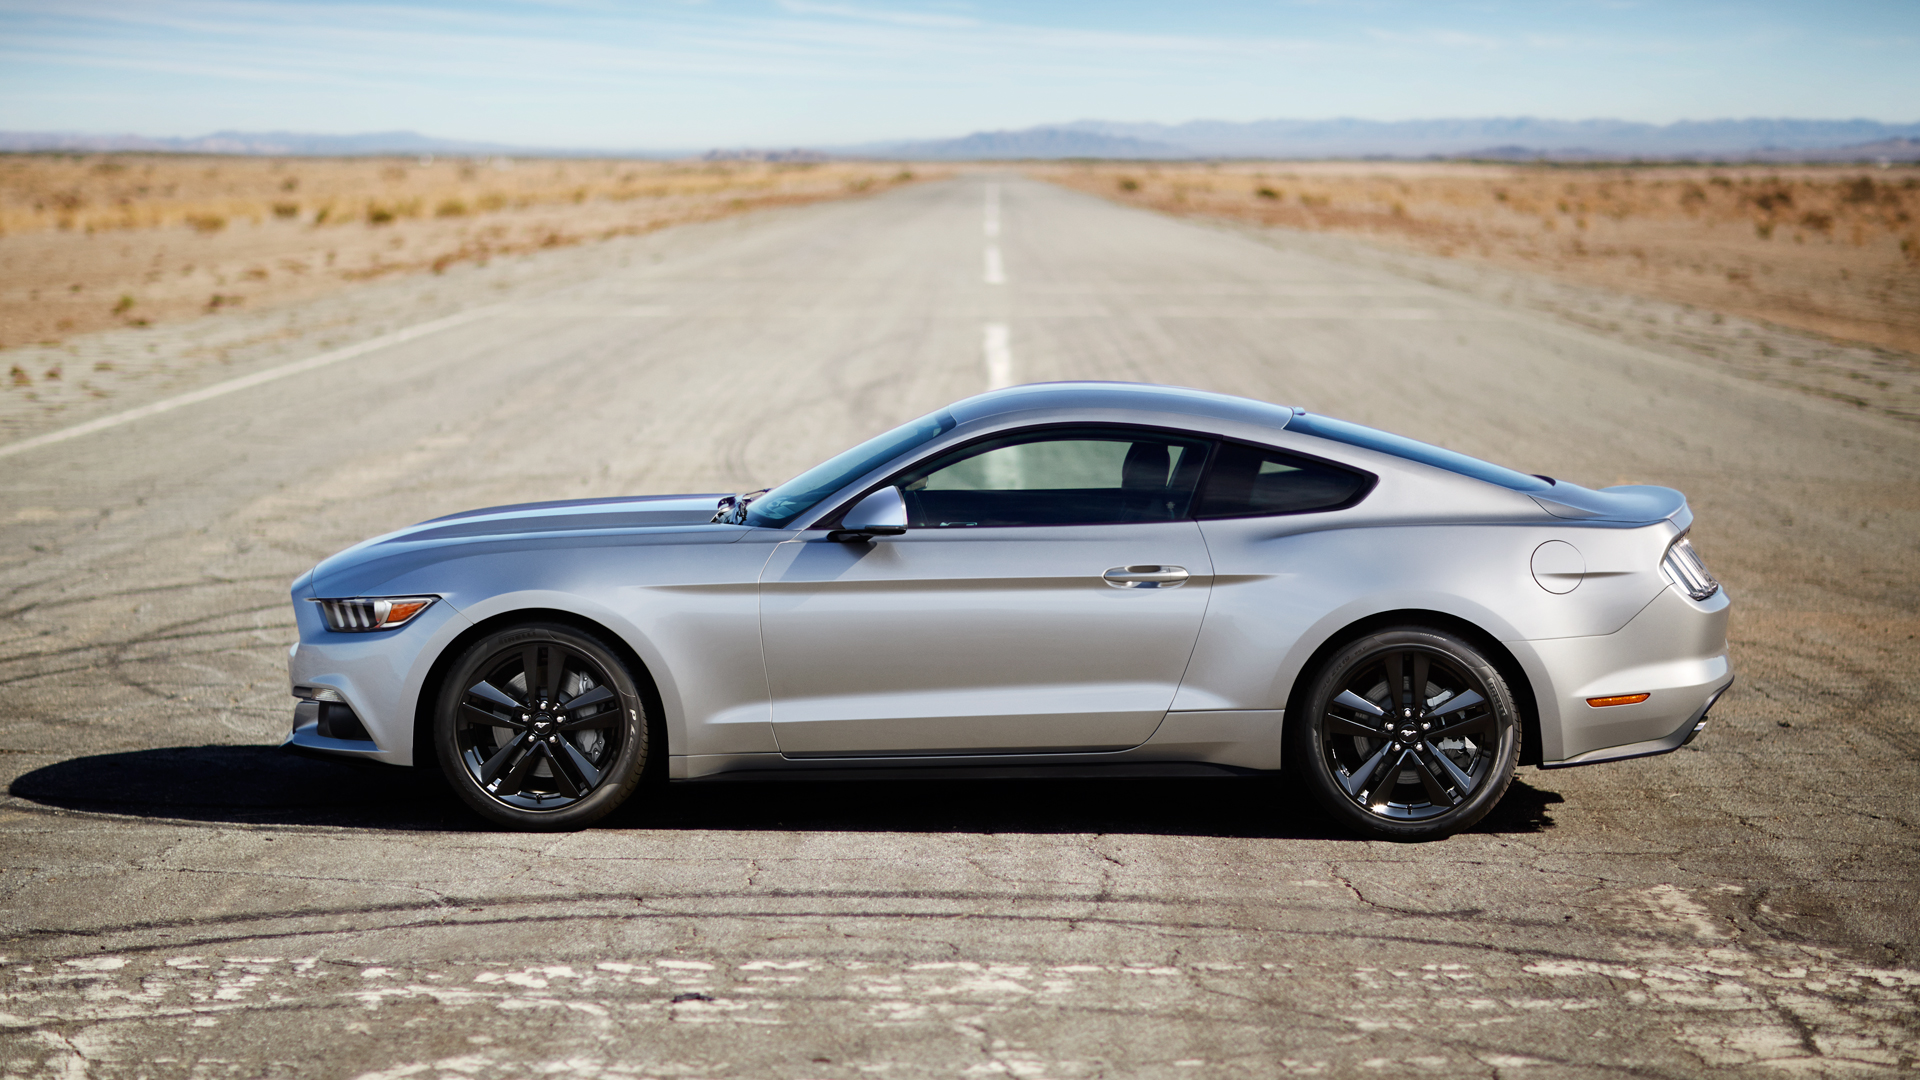 mustang gt premium fastback in ingot silver. full hd wallpaper and